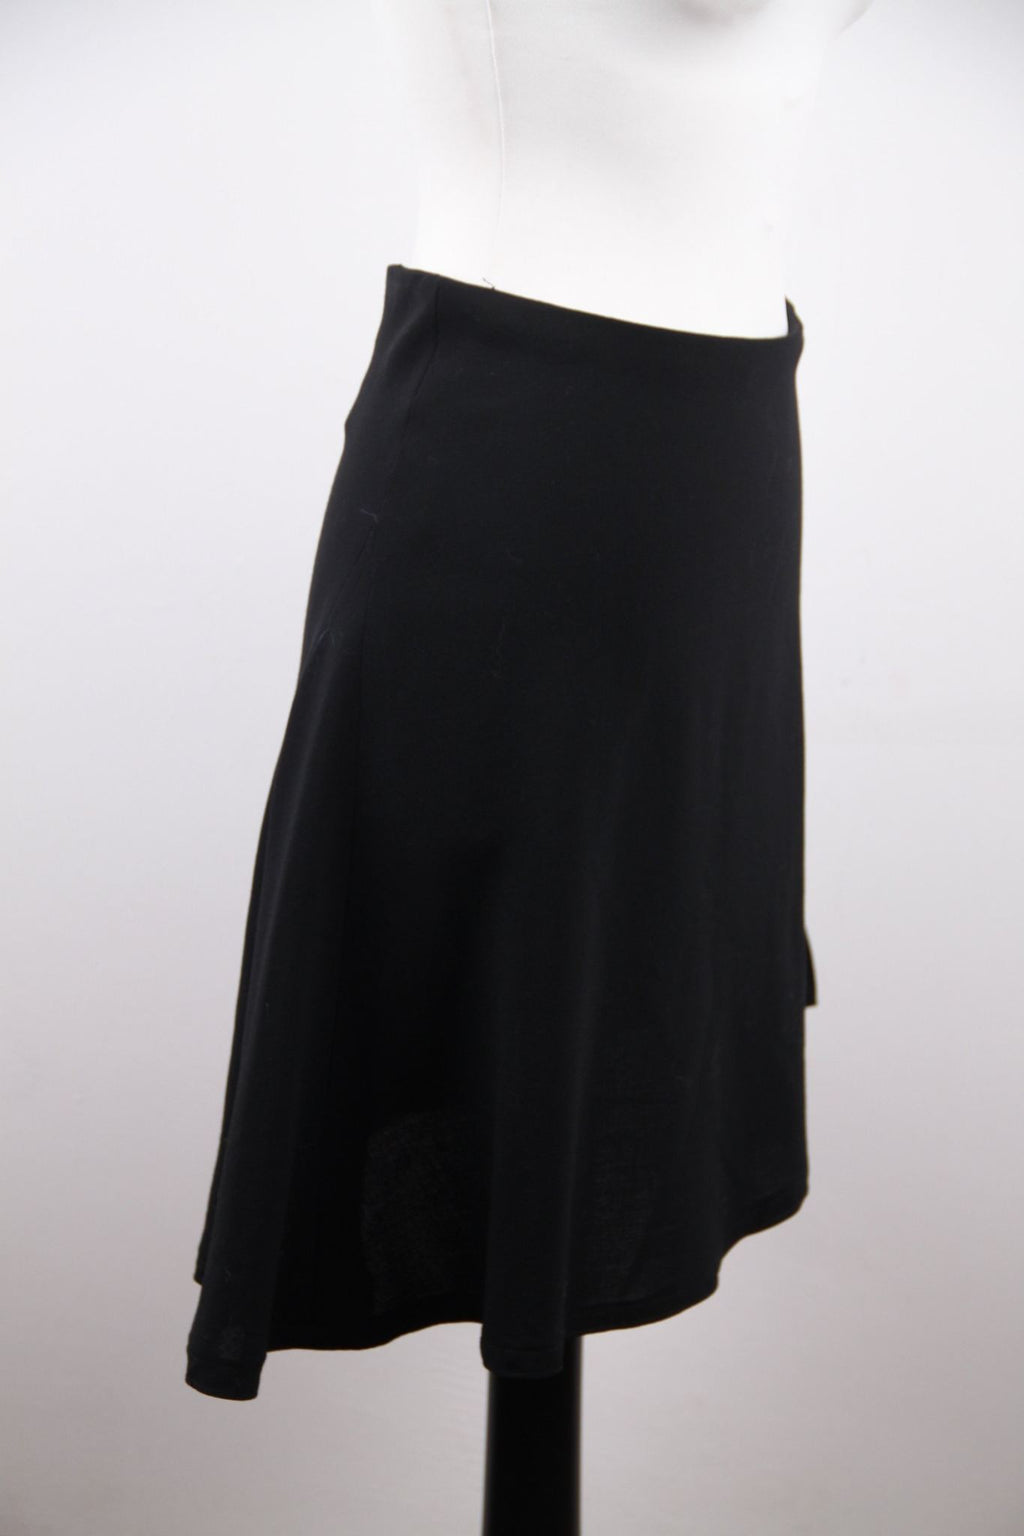 Chanel Boutique Vintage Black Wool Blend Asymmetric Mini Skirt 38 Opherty & Ciocci